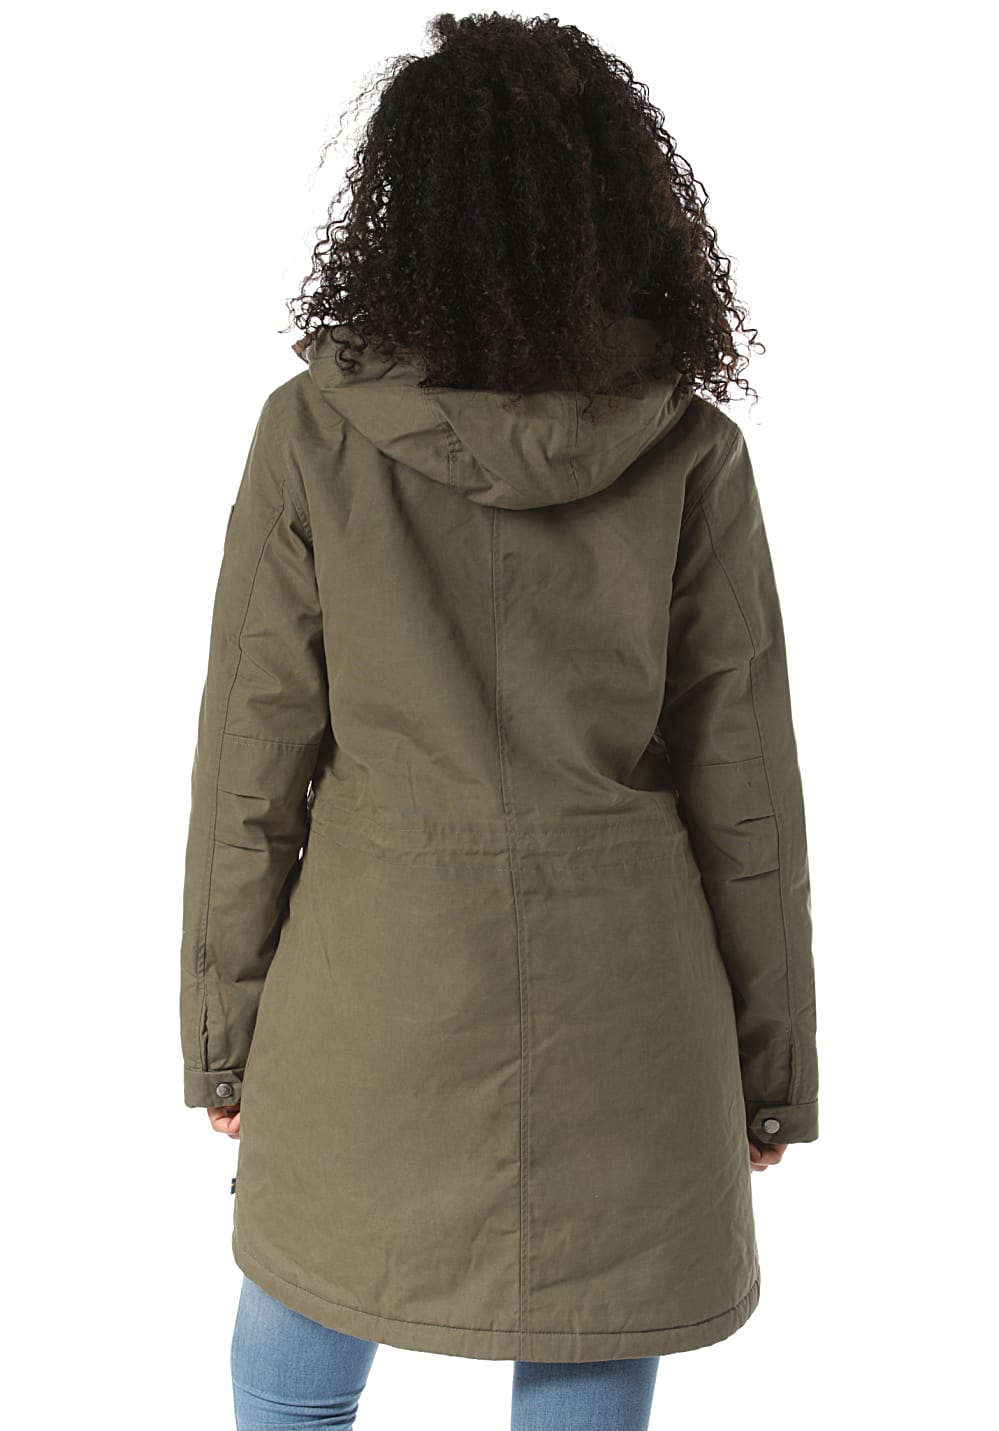 separation shoes f028e a768e FJÄLLRÄVEN Greenland Winter Parka - Funktionsjacke für Damen - Grün